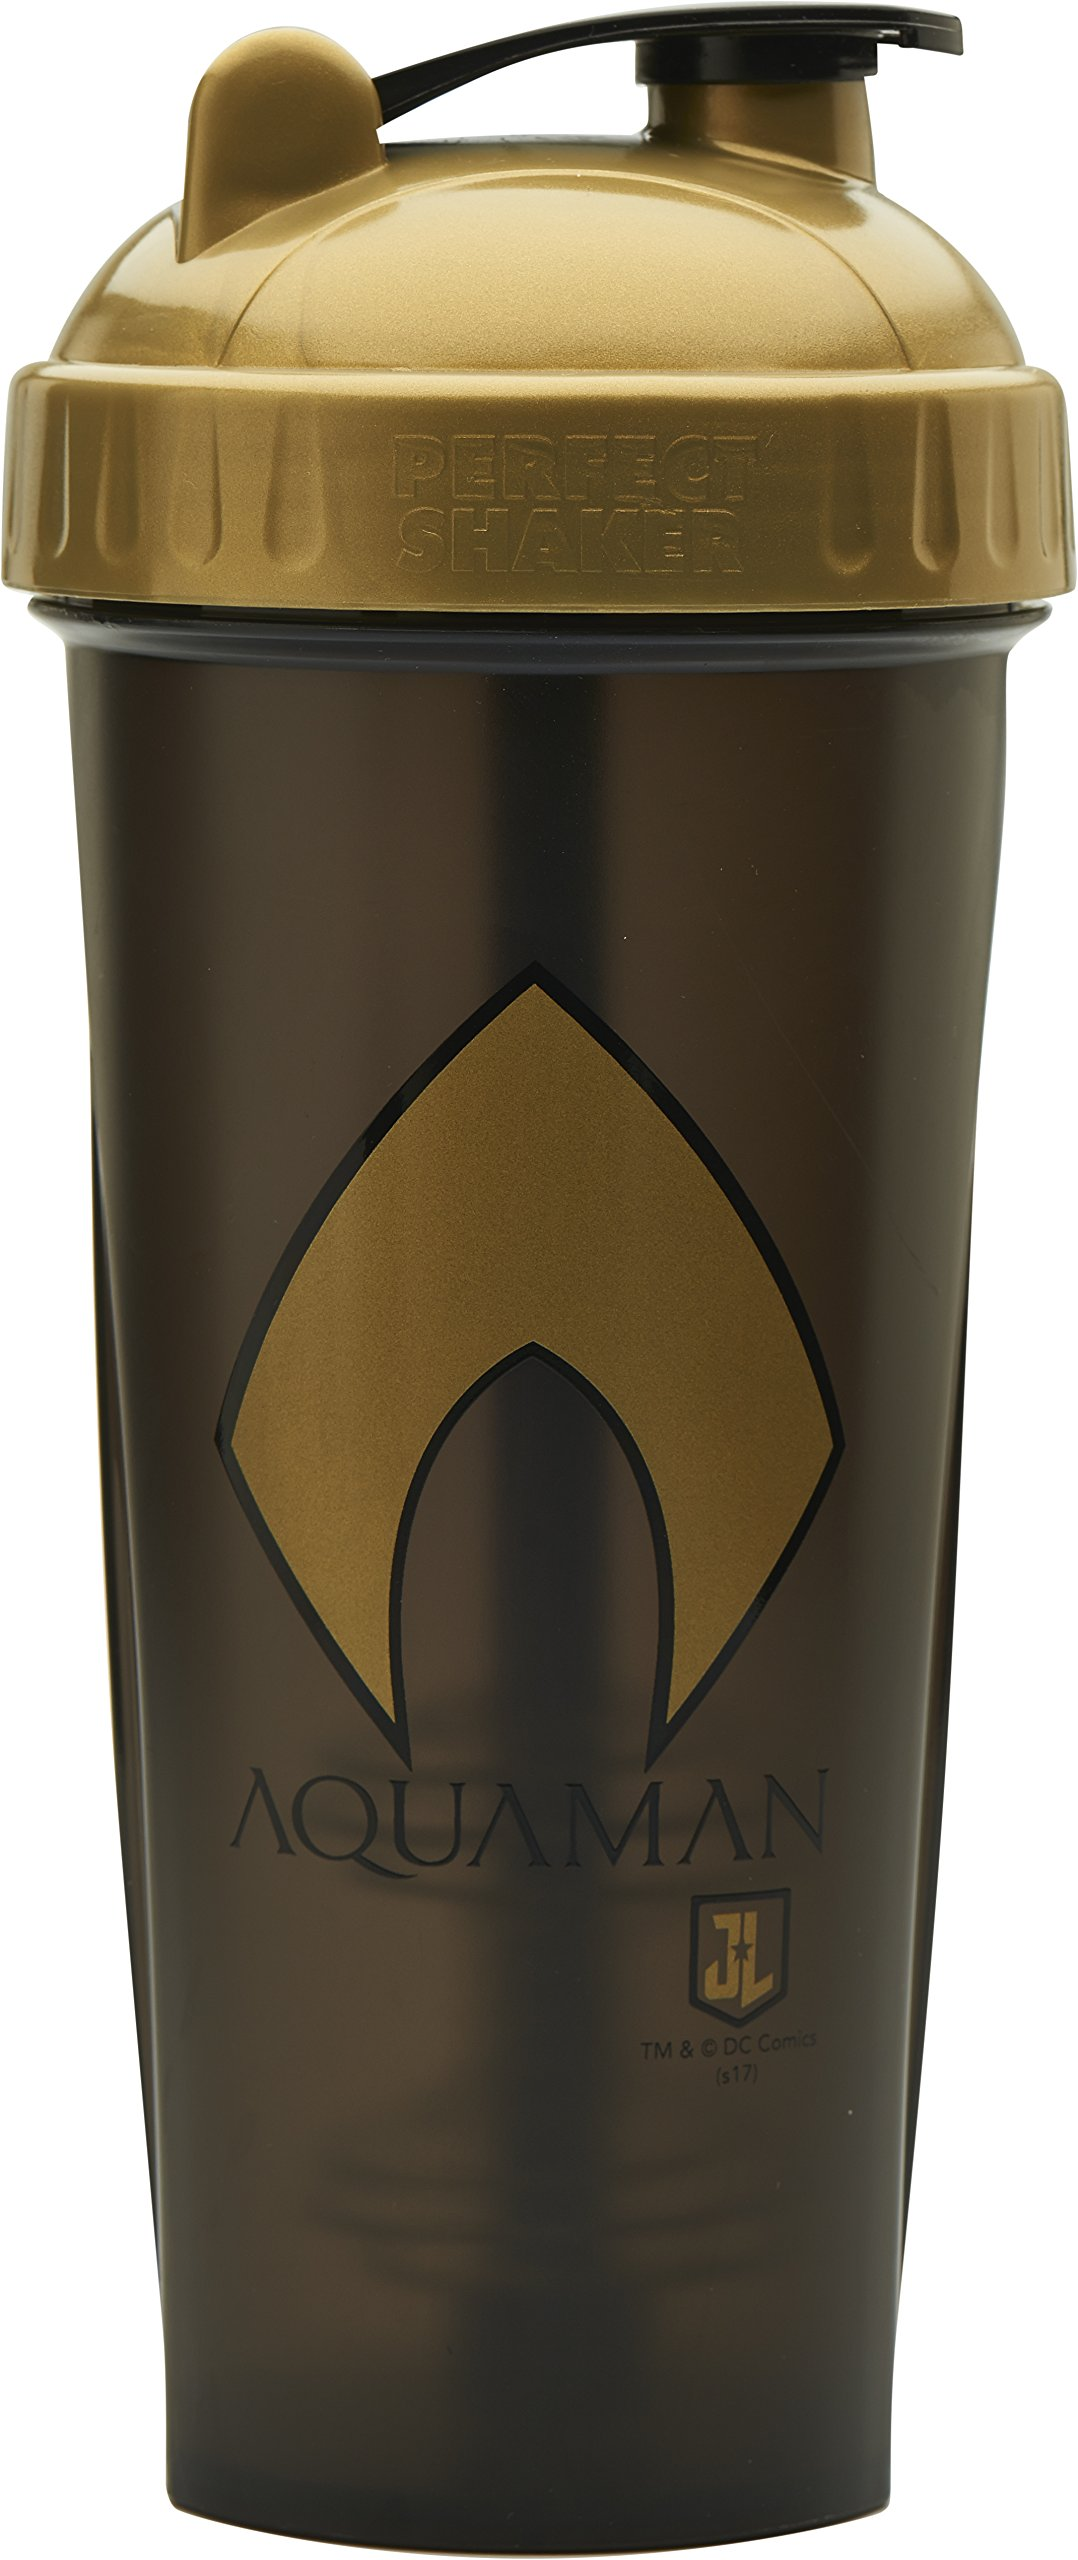 Performa Perfect Shaker - Justice League Movie Series, Leak Free Protein Shaker Bottle With Actionrod Mixing Technology For All Your Protein Needs! Shatter Resistant & Dishwasher Safe (Aquaman)